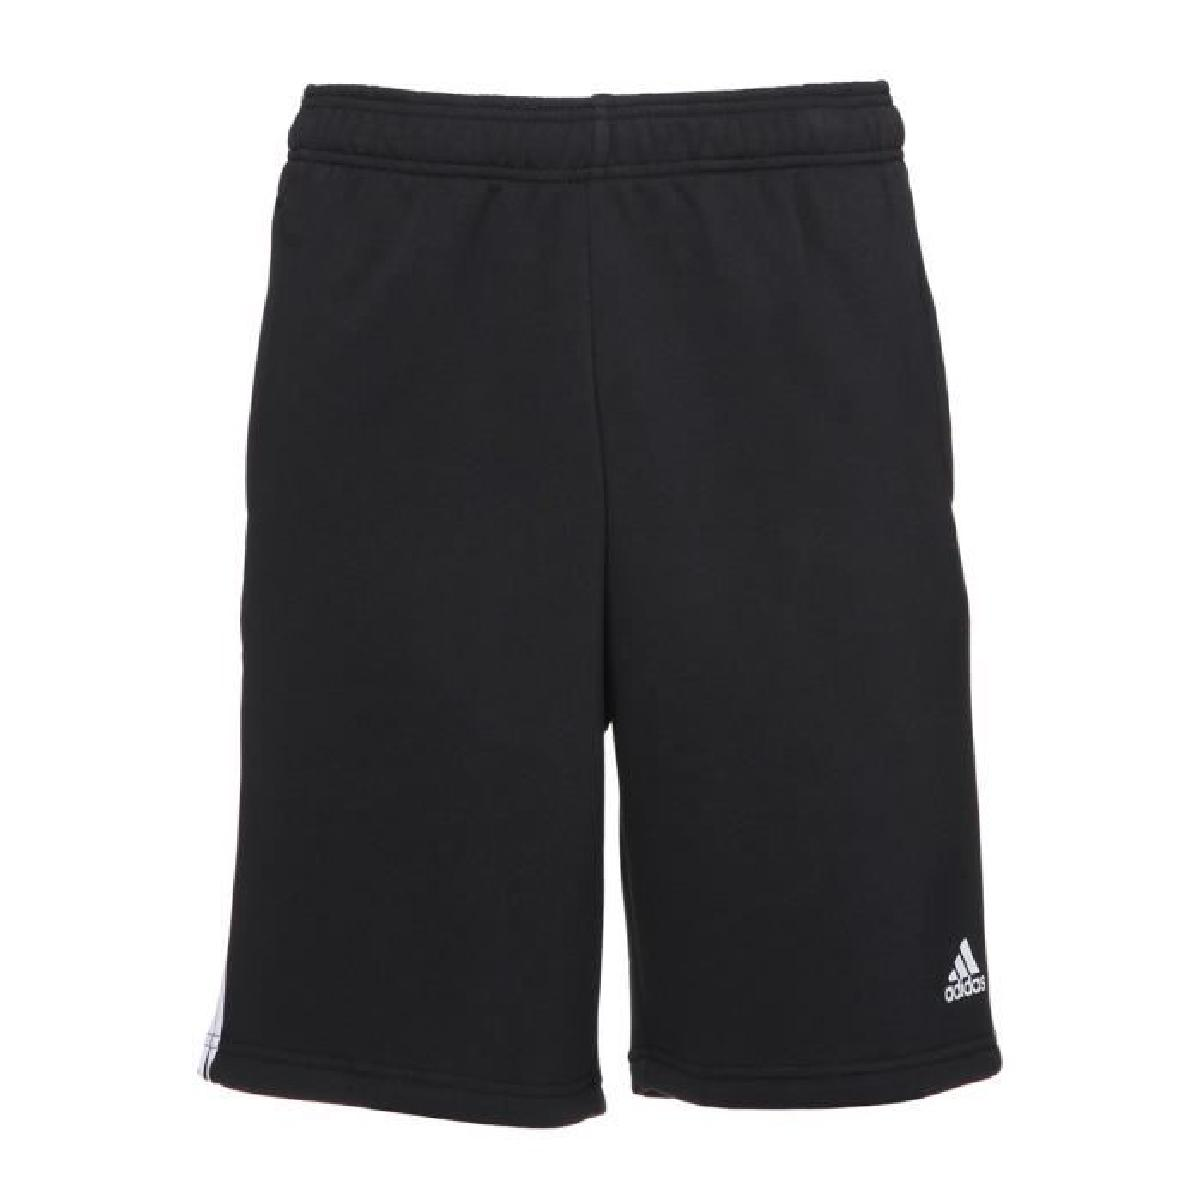 bermuda homme adidas pas cher,ADIDAS Short Ess 3S Ft Homme